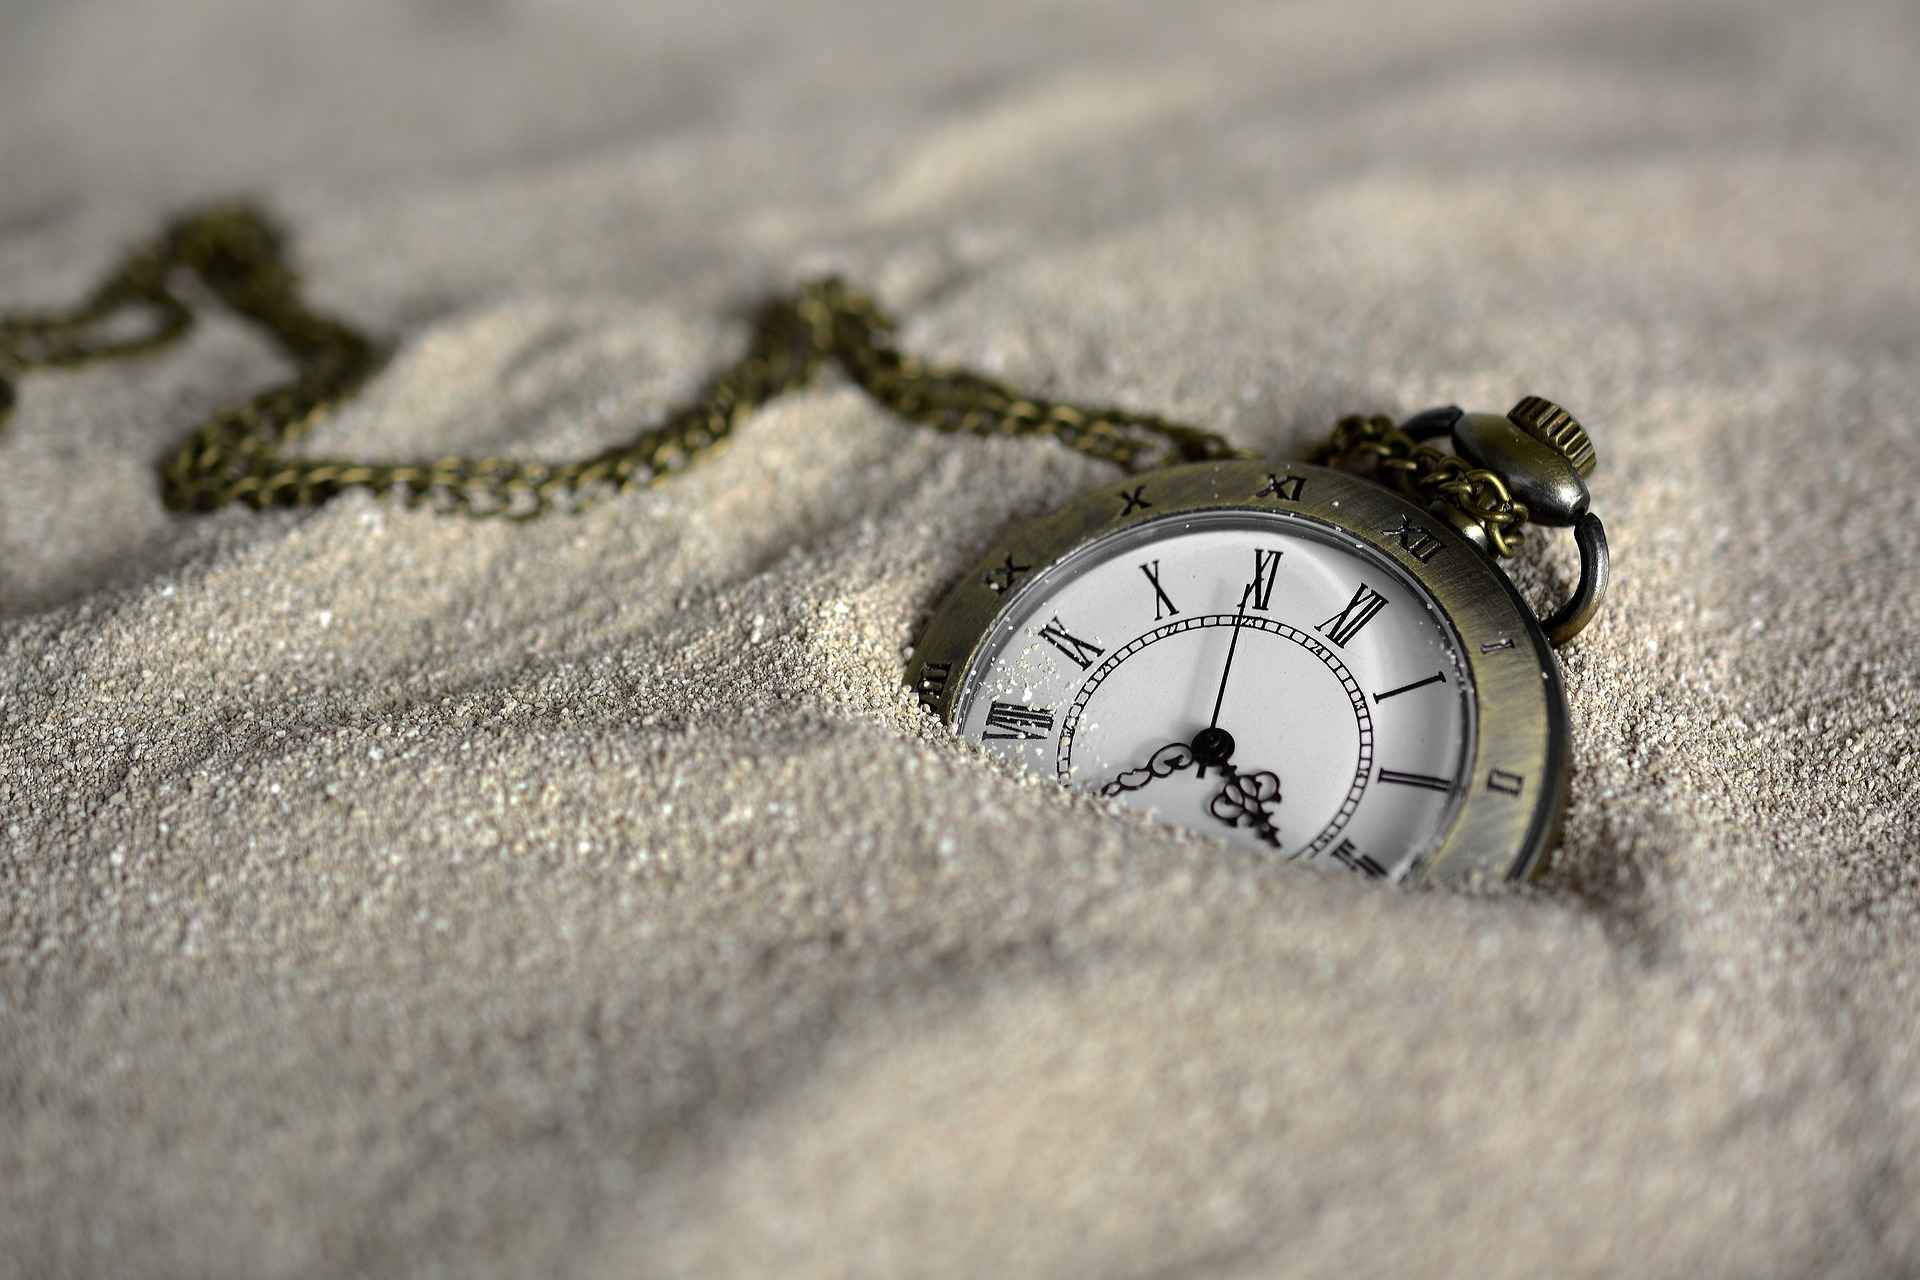 time-dissolving-in-sand